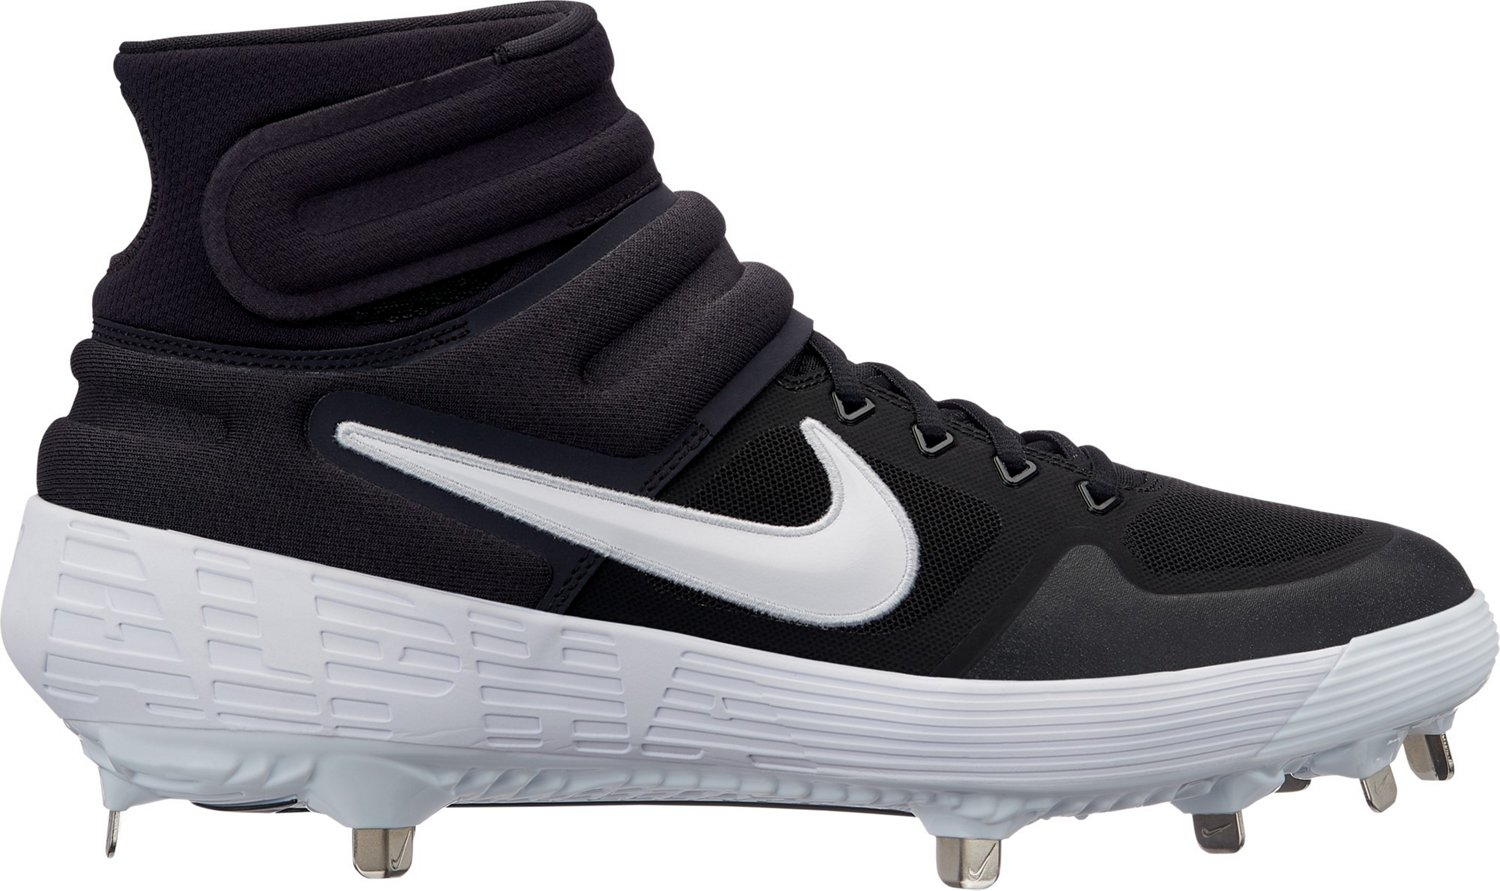 83bd0d19c Display product reviews for Nike Men s Alpha Huarache Elite 2 Mid Baseball  Cleats